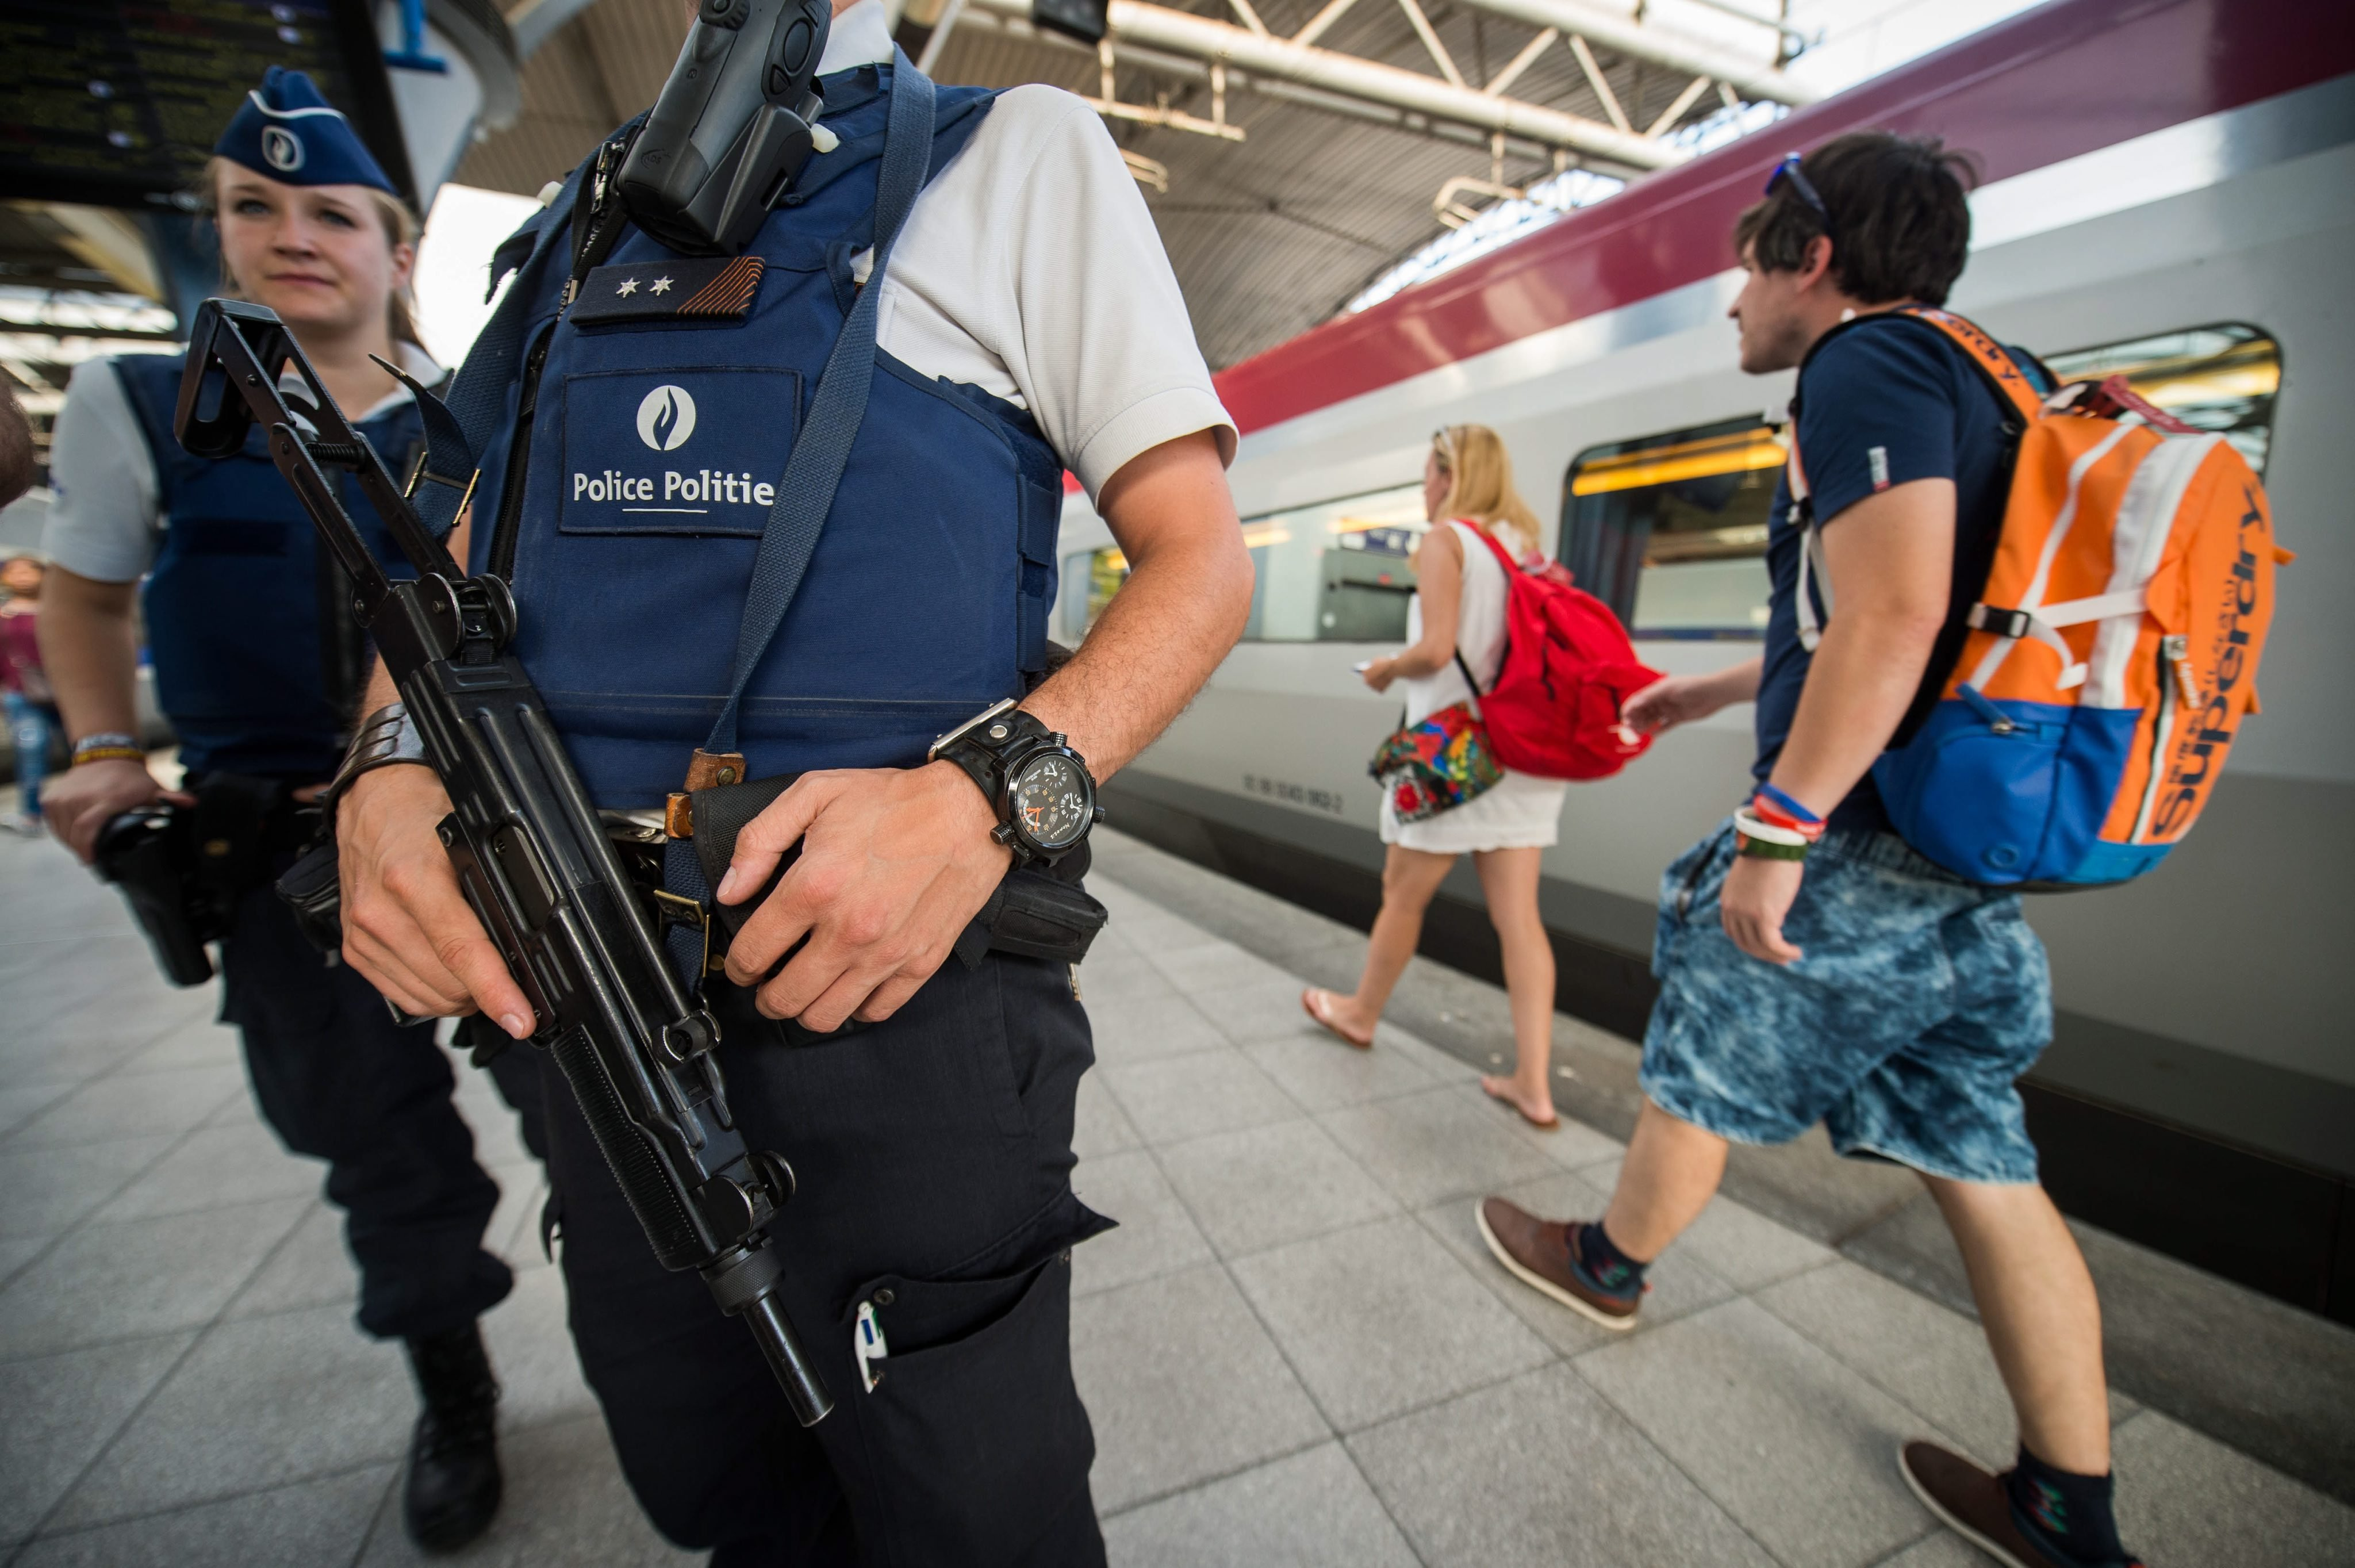 Train Security Could Tighten After Americans Thwart Attack